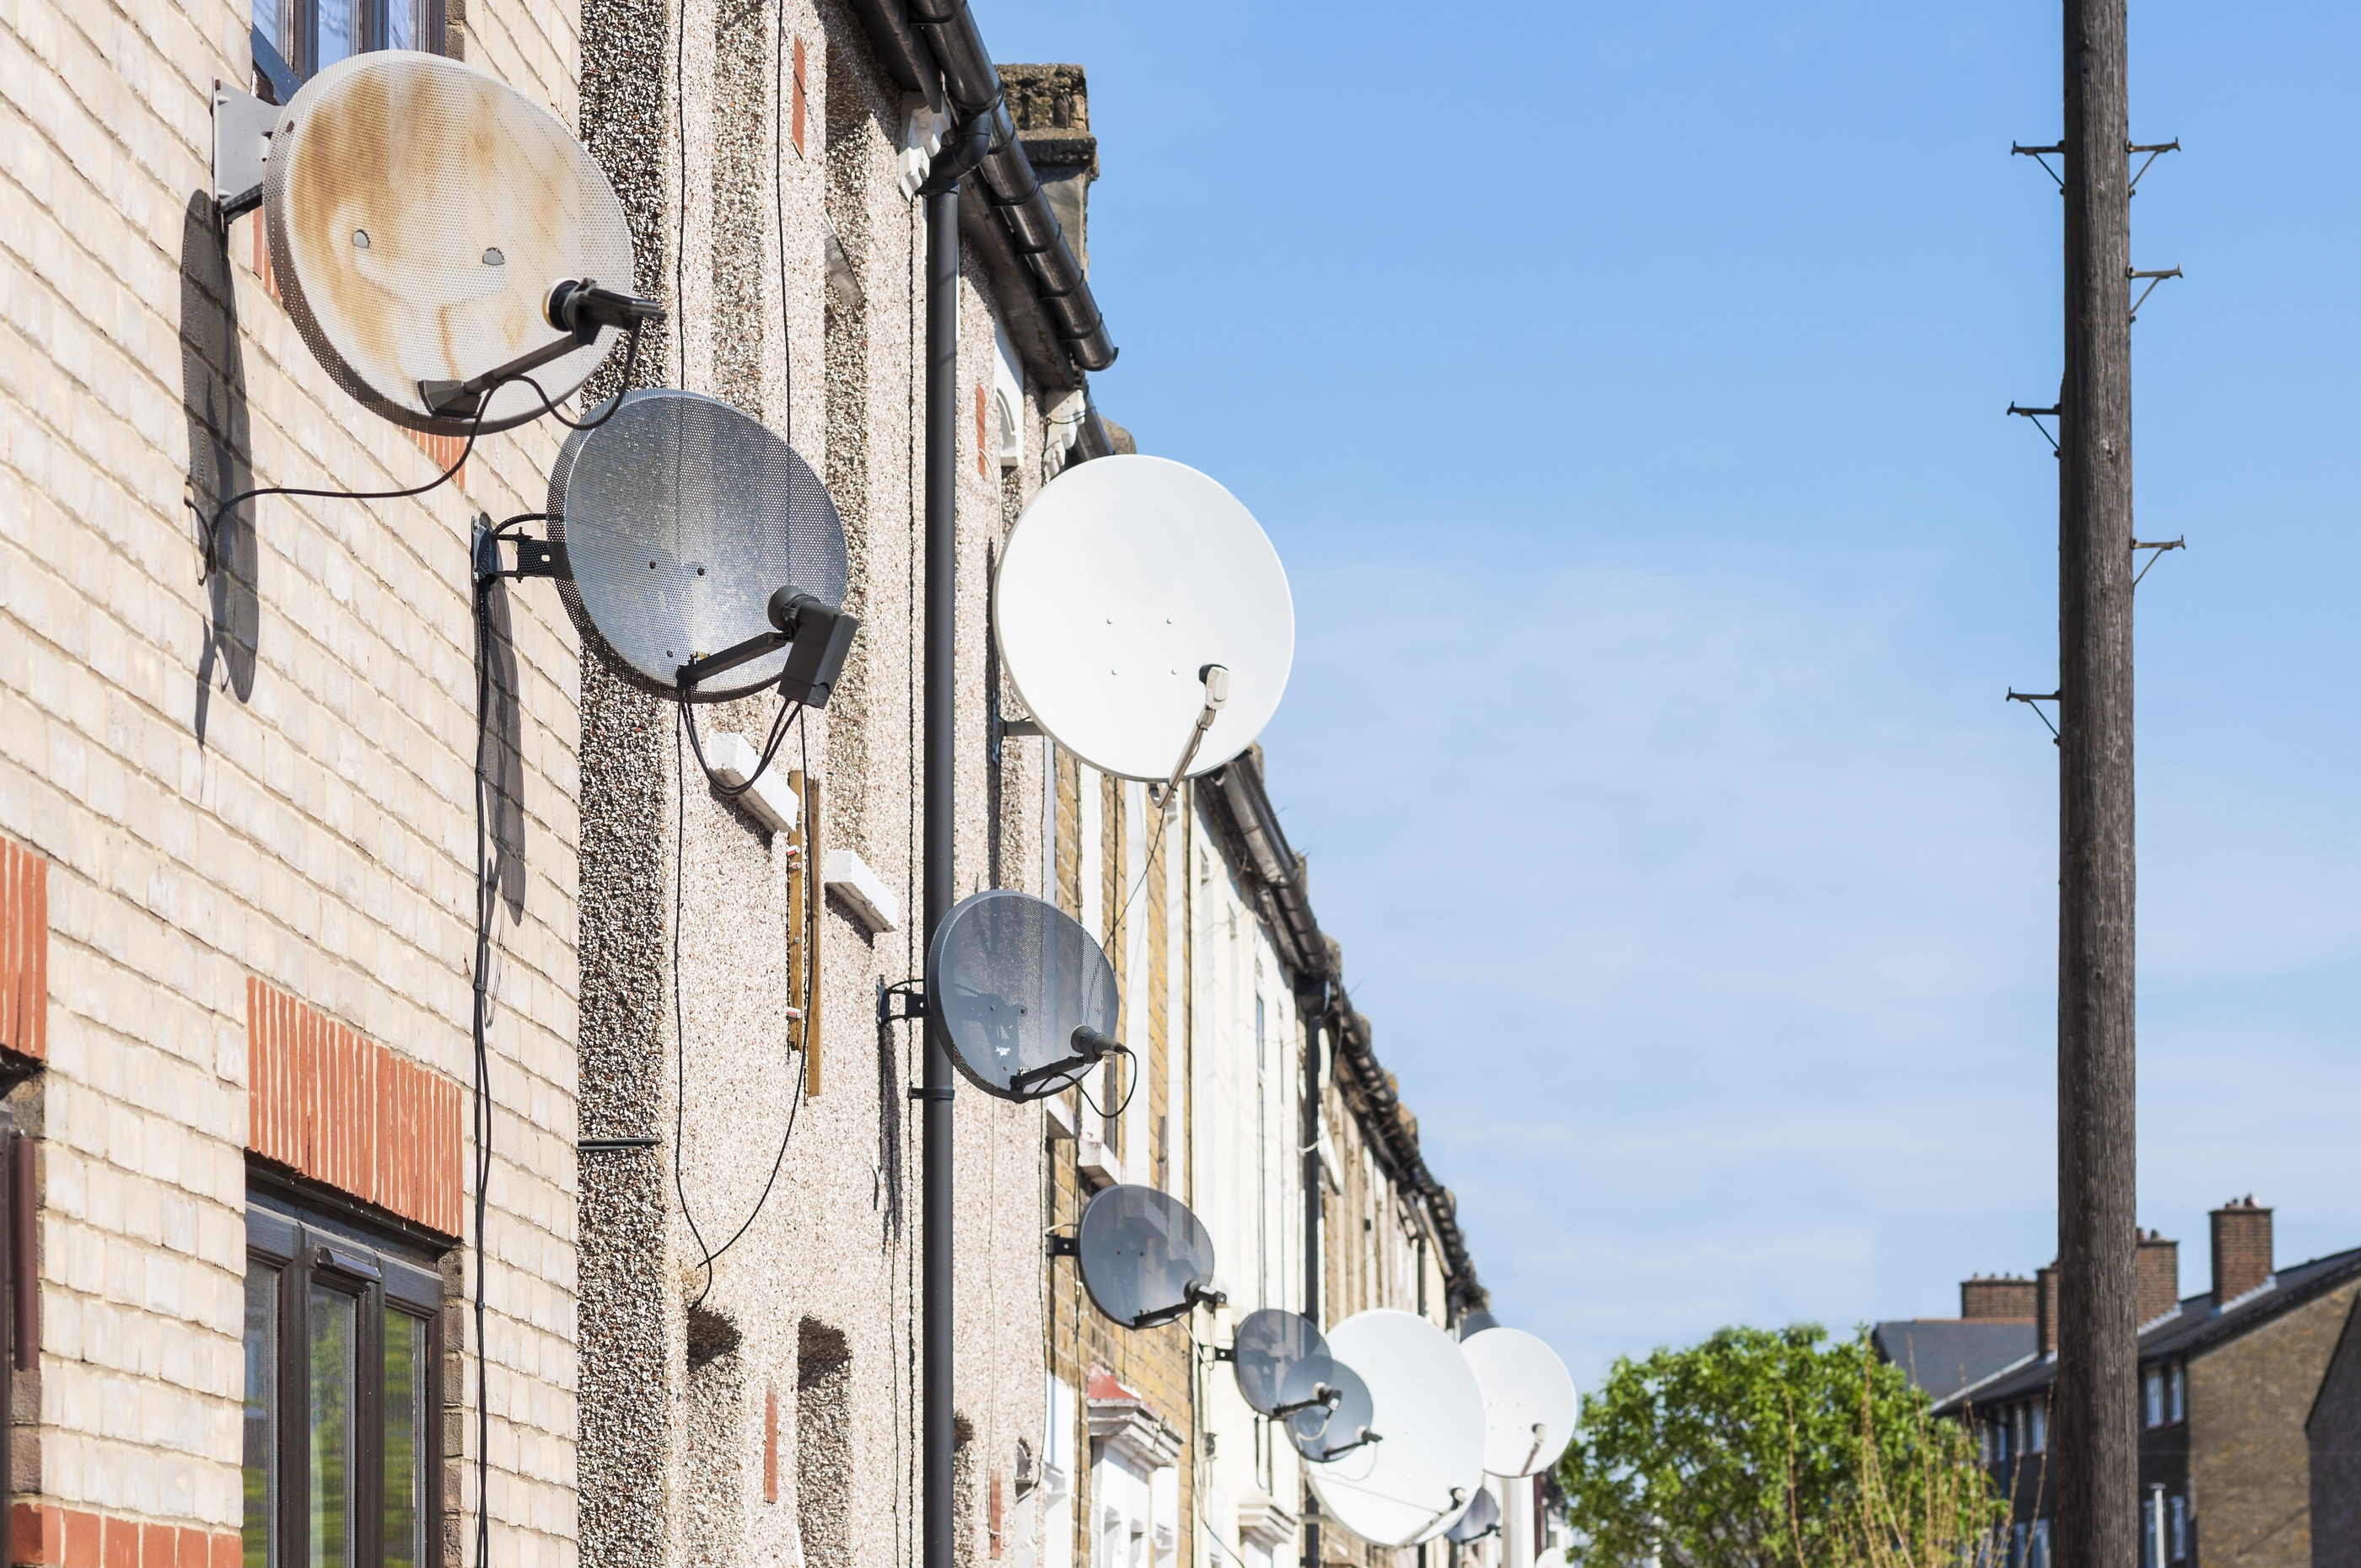 bigstock-Row-of-satellite-dishes-instal-32382467.jpg